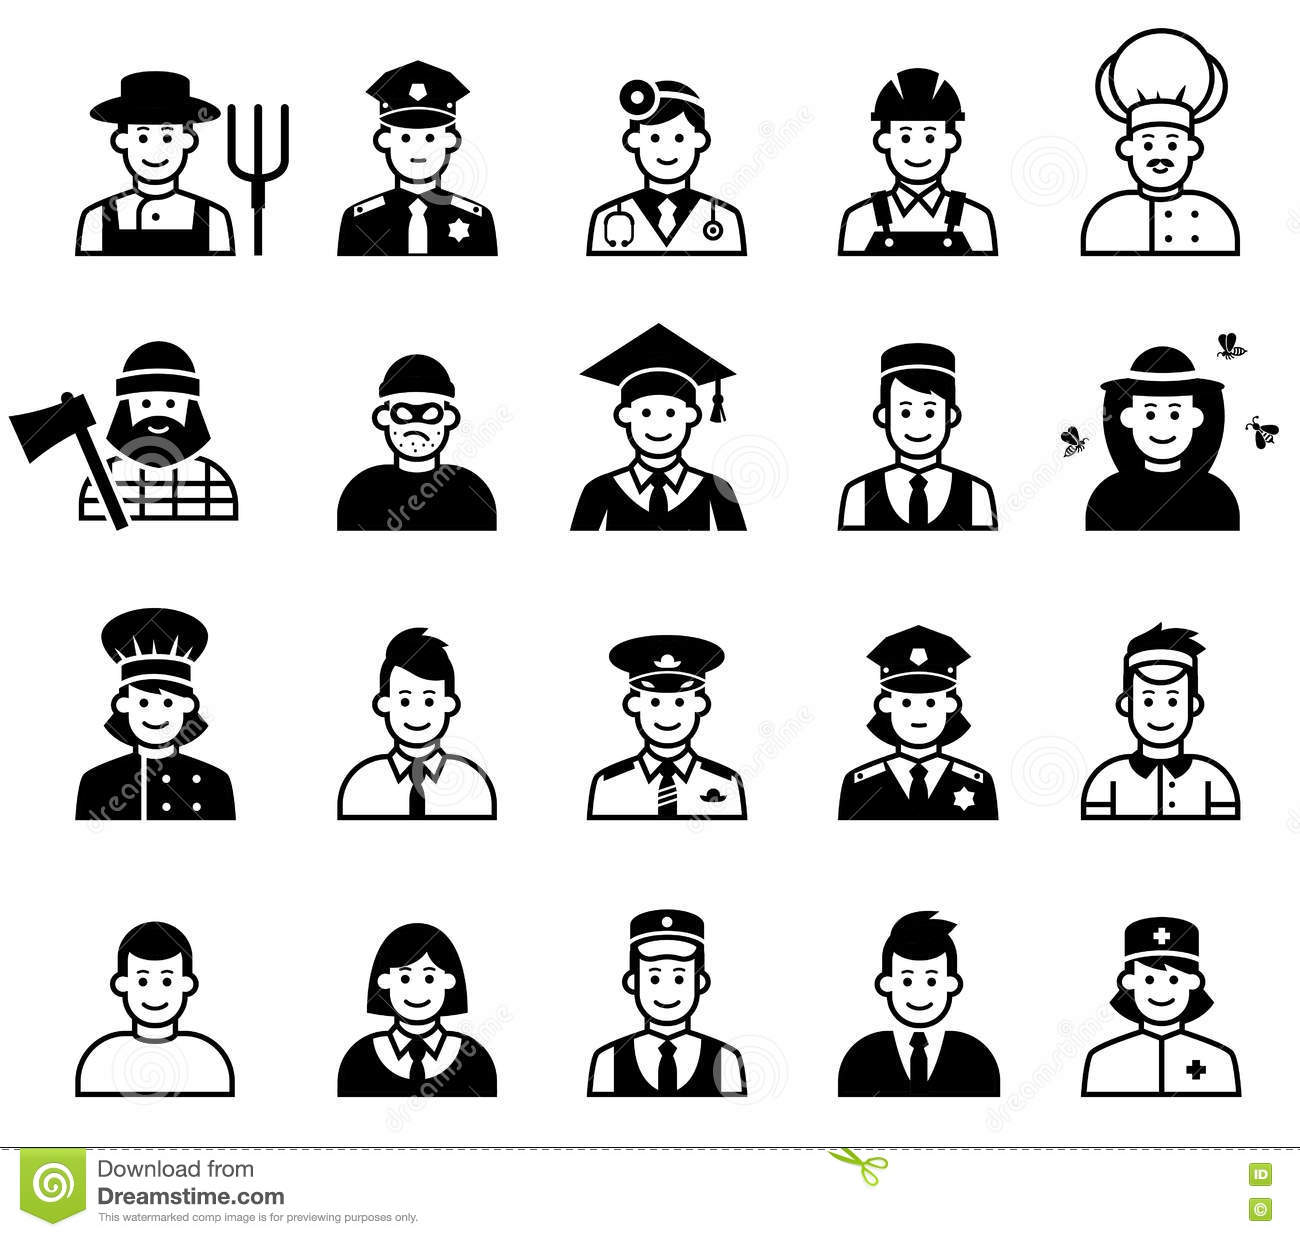 Occupations Cartoons Illustrations Amp Vector Stock Images